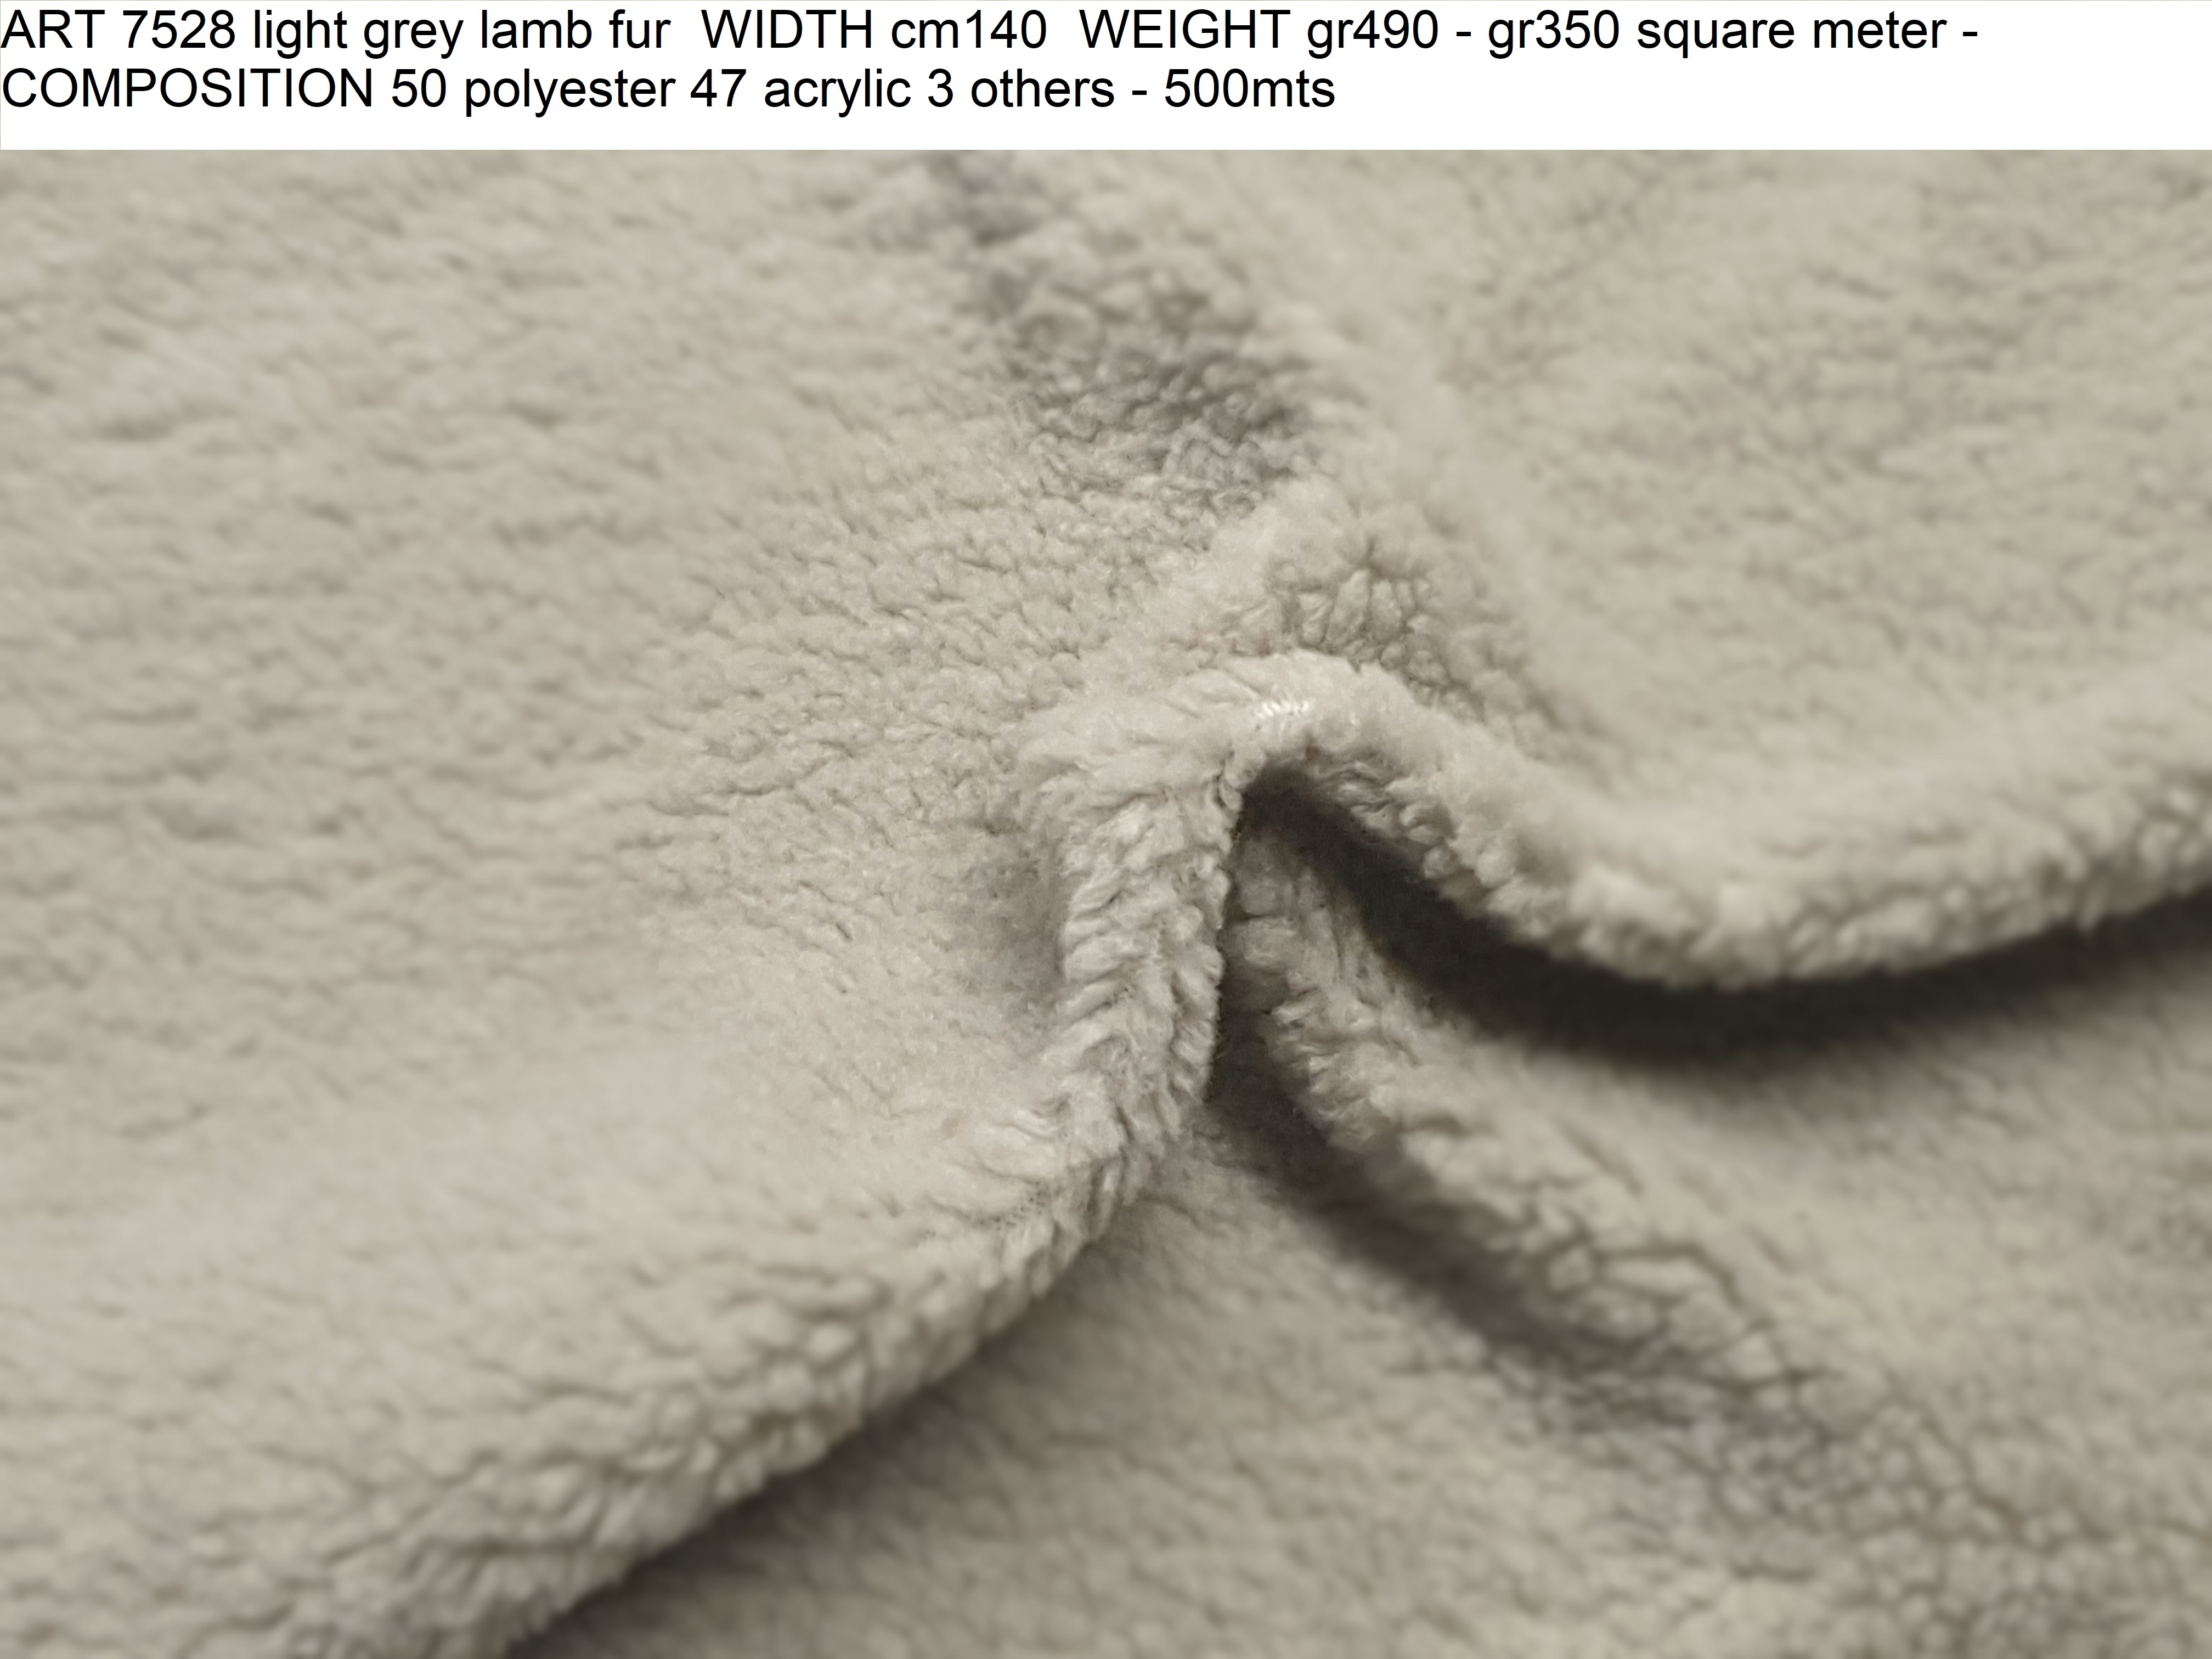 ART 7528 light grey lamb fur WIDTH cm140 WEIGHT gr490 - gr350 square meter - COMPOSITION 50 polyester 47 acrylic 3 others - 500mts